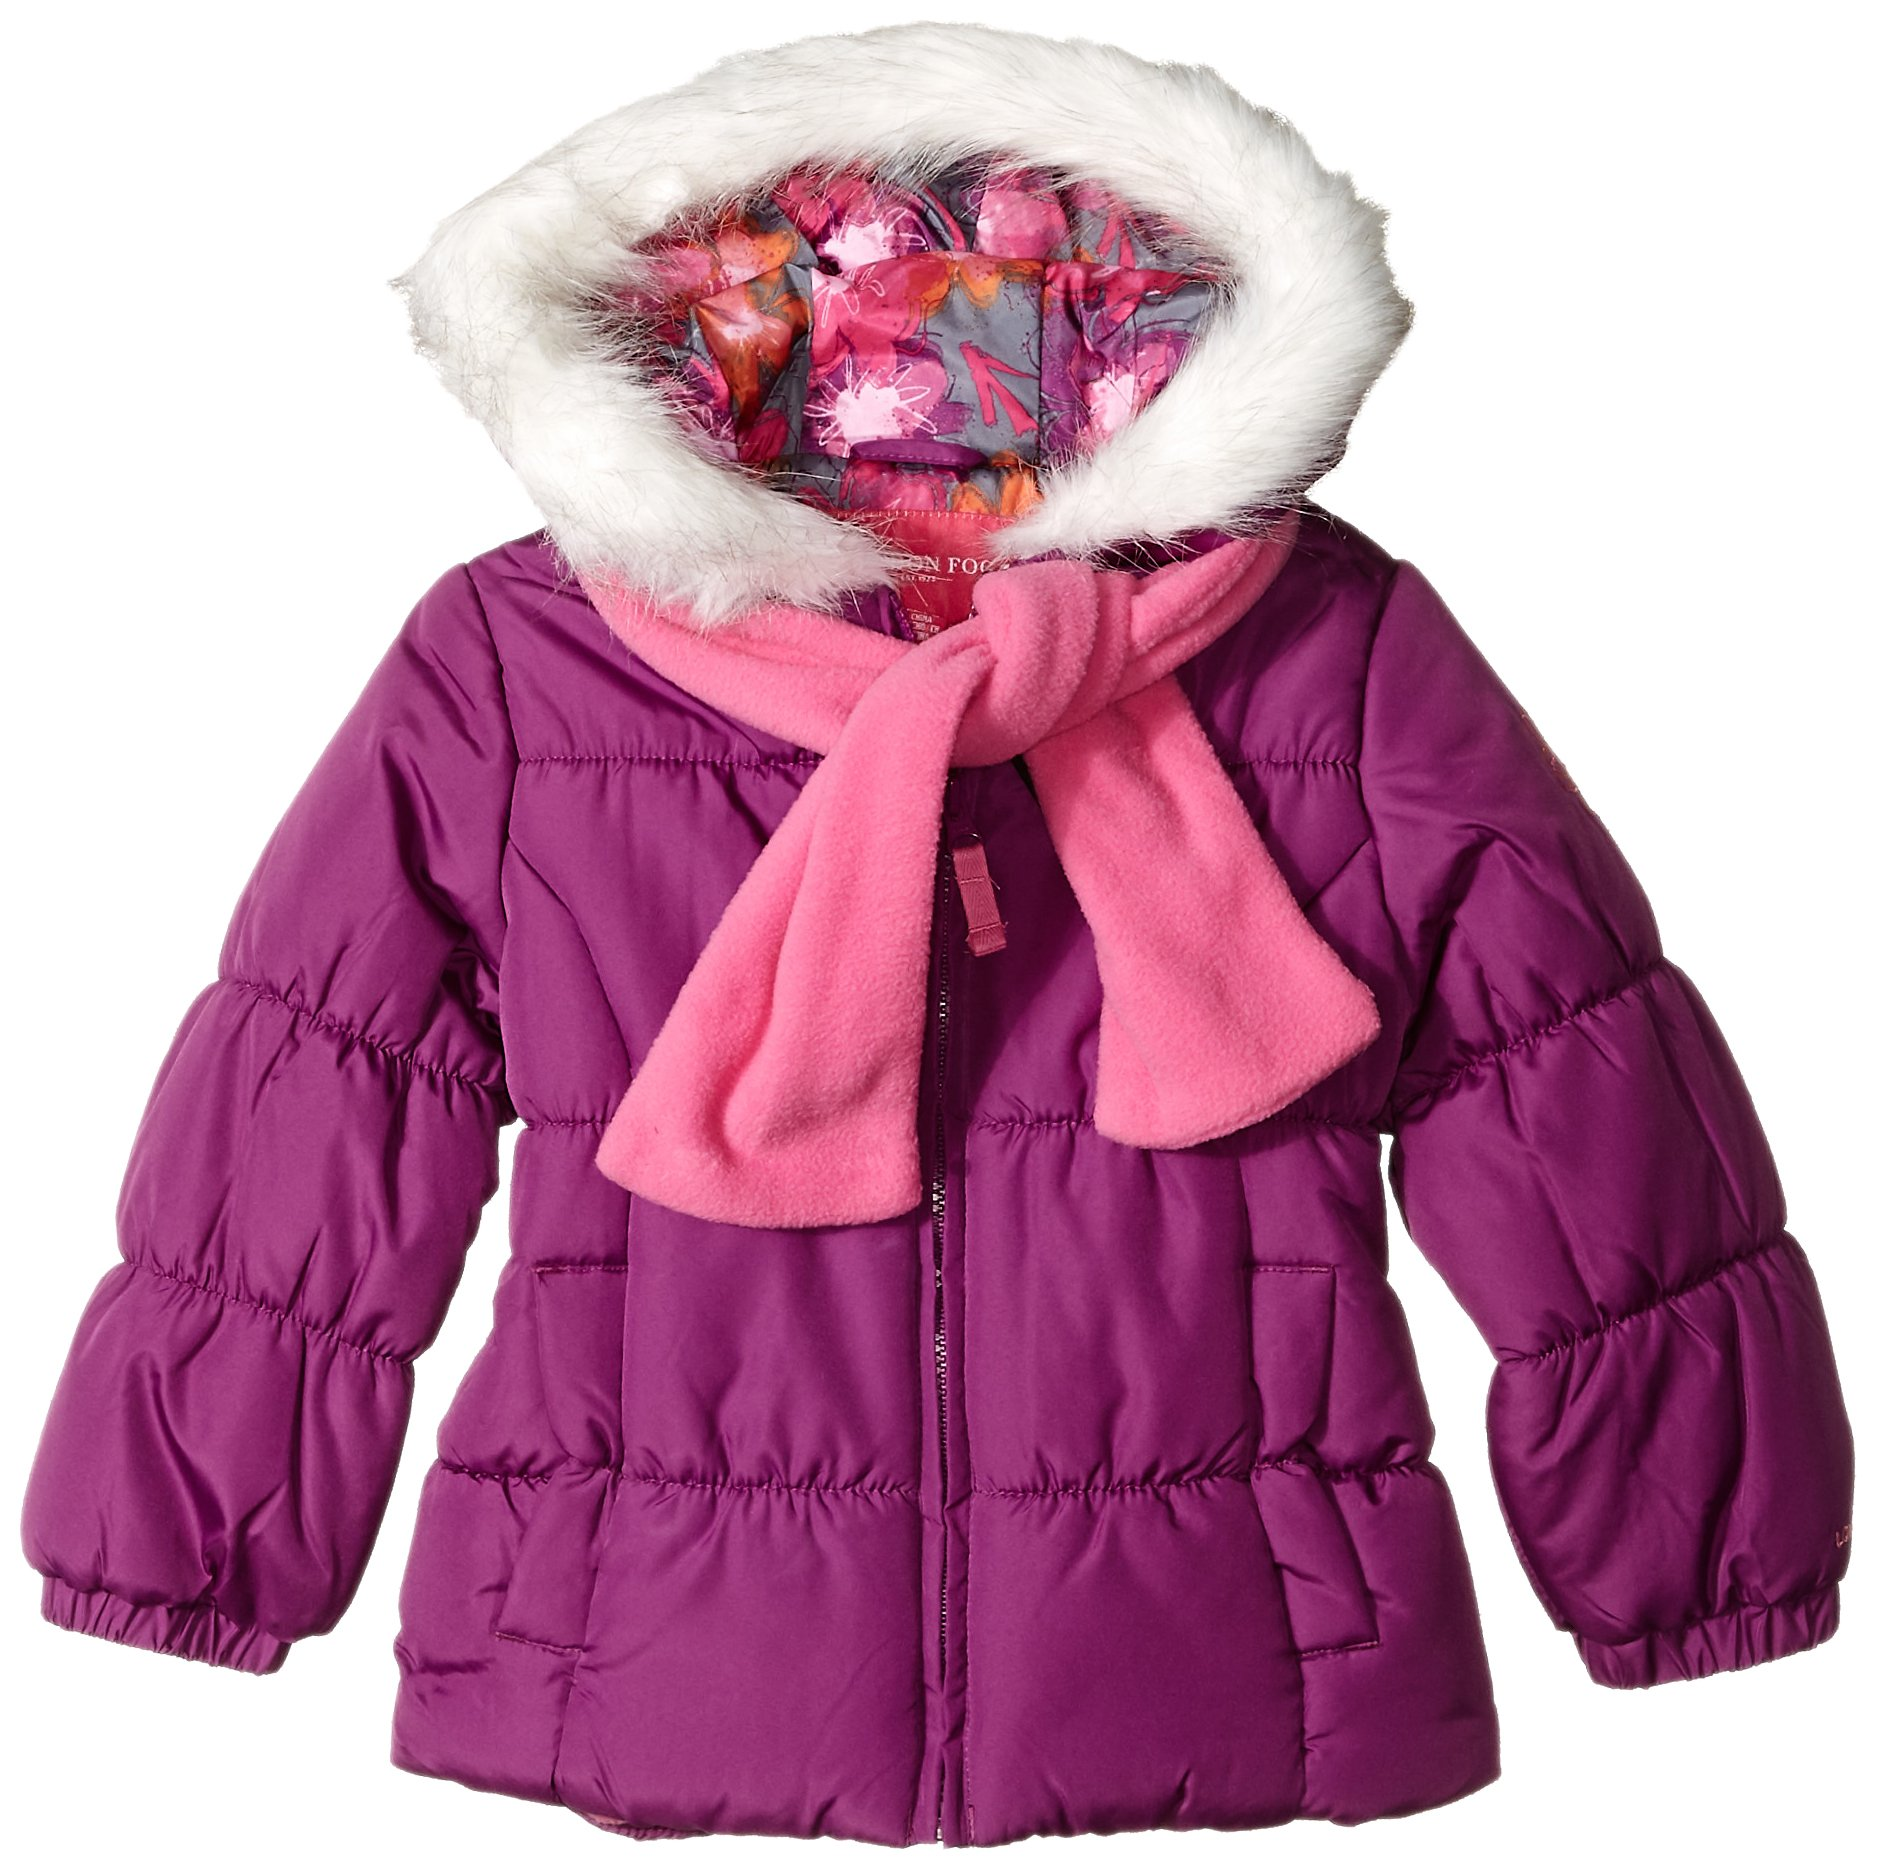 London Fog Little Girls' Winter Coat with Scarf and Hat, Berry Treat, 6X